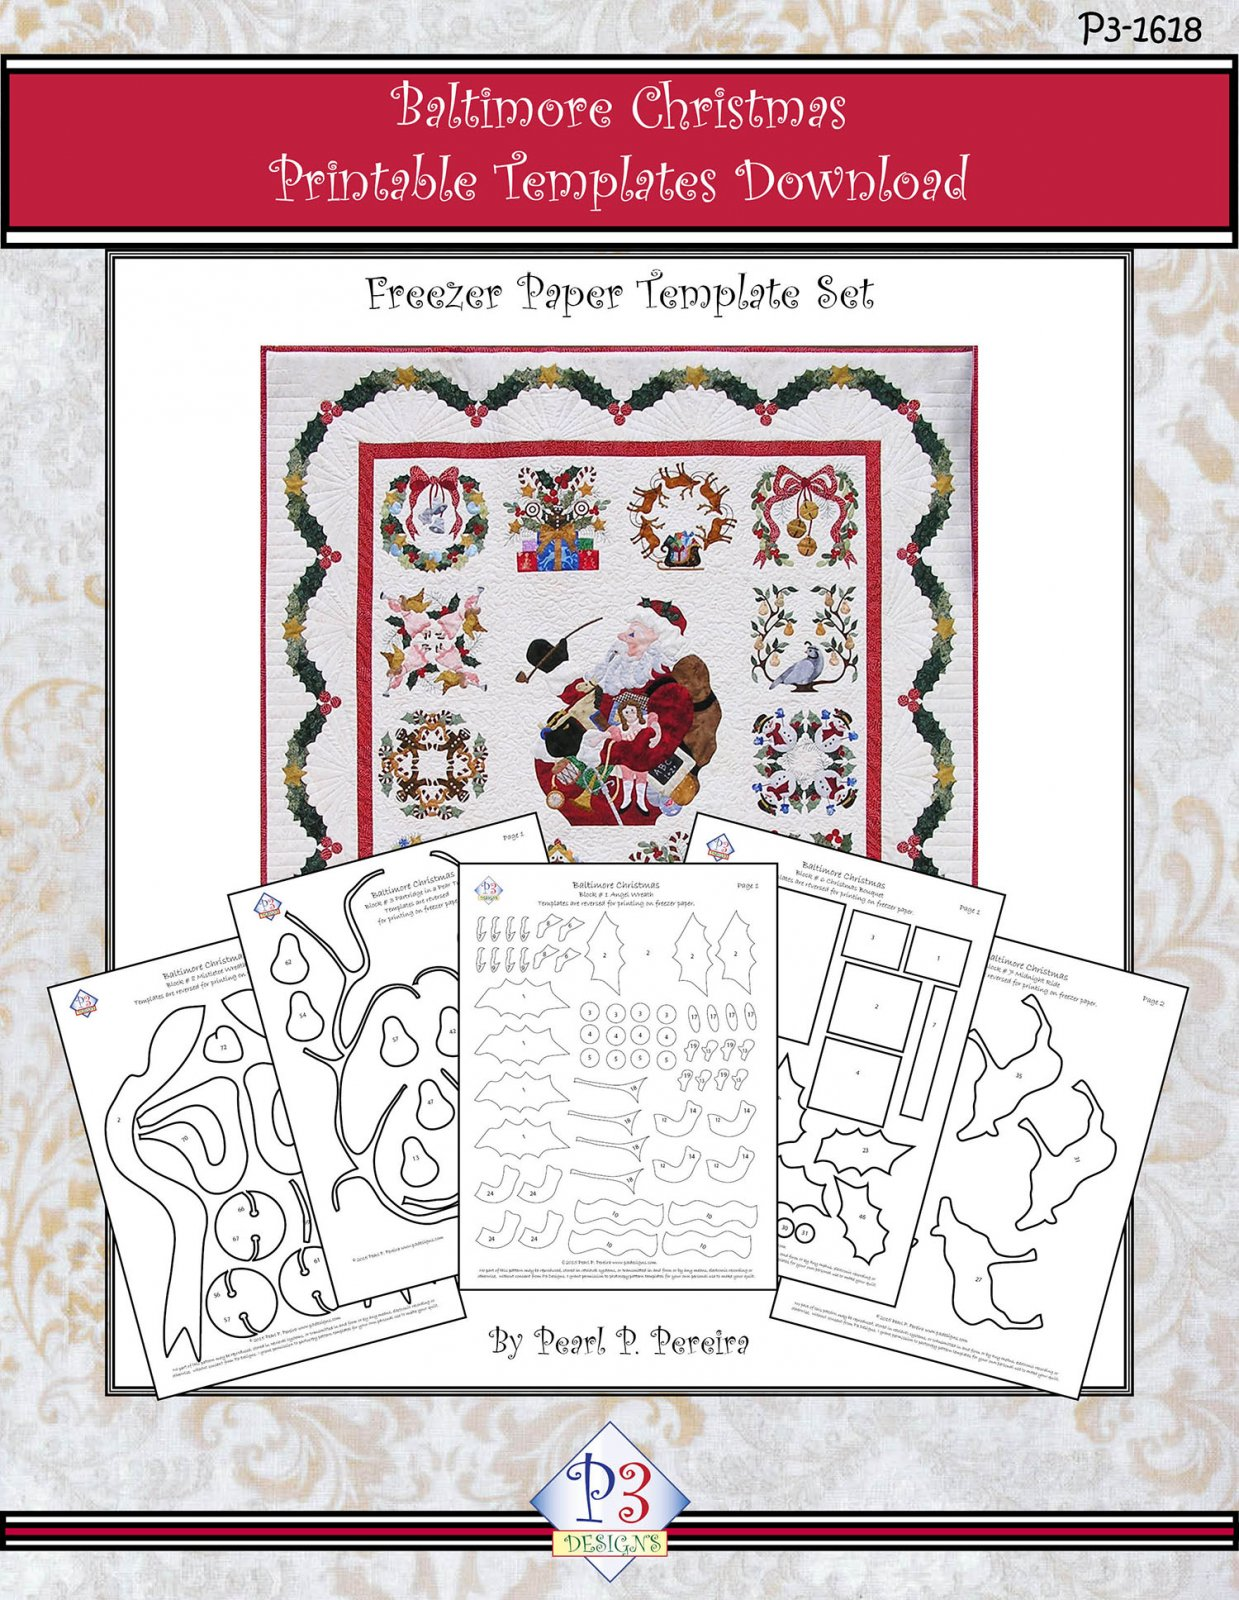 P3-1618 Baltimore Christmas Template only PDF Download